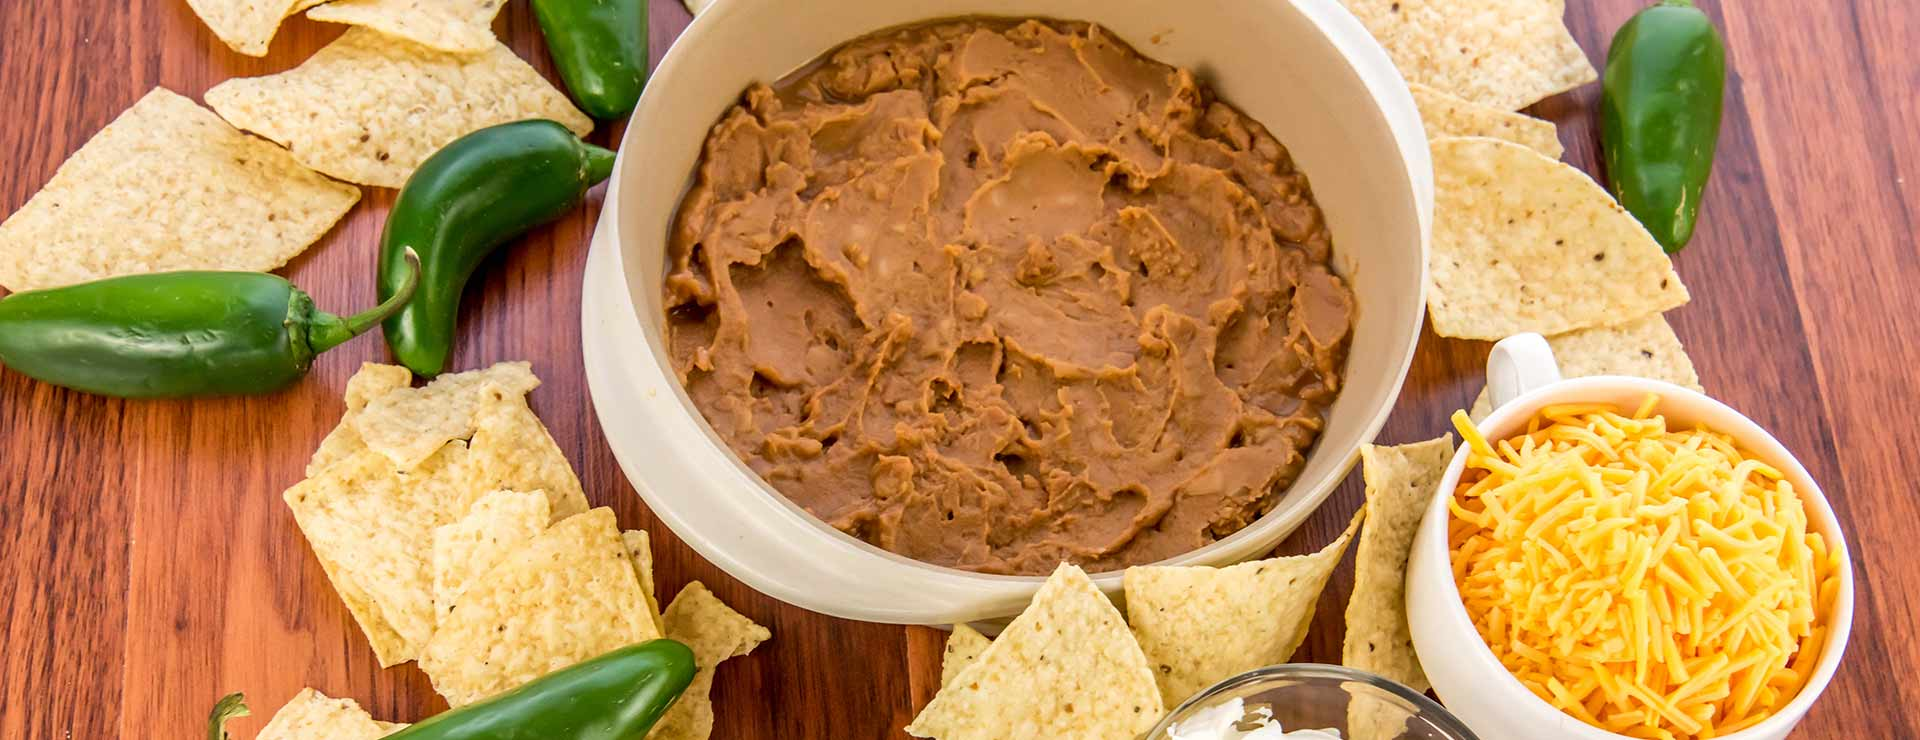 Bean dip and tortilla chips